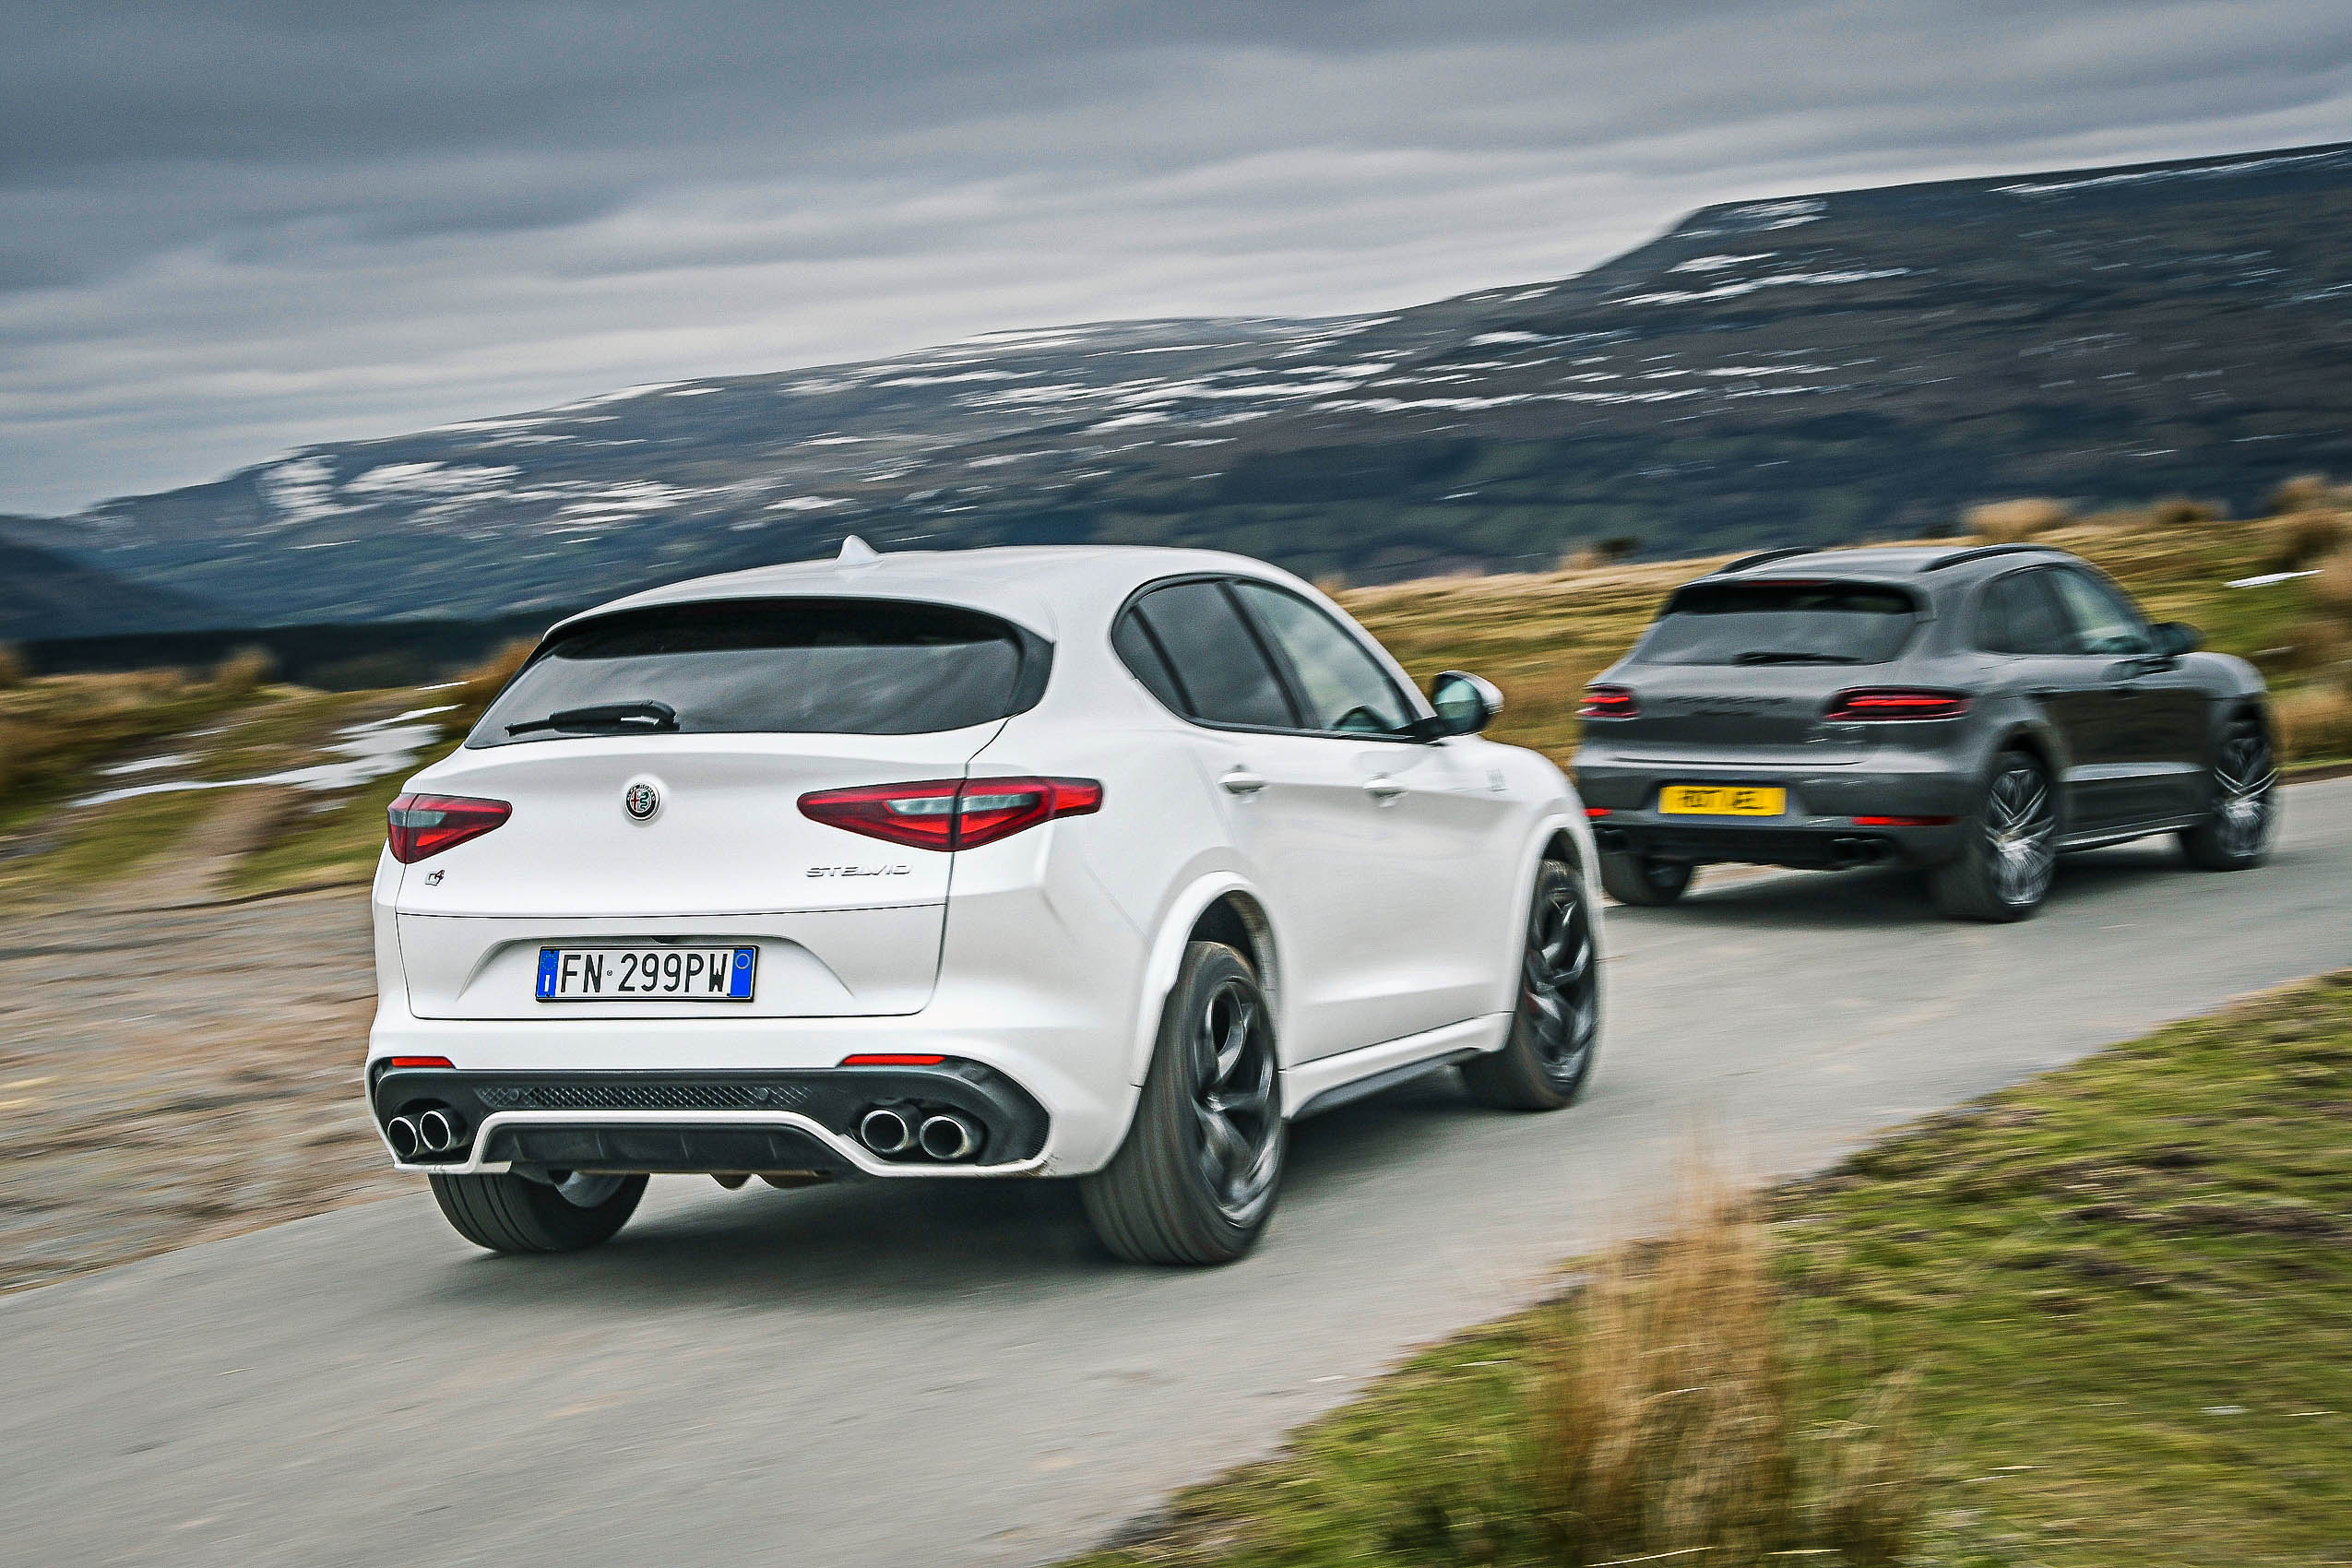 Alfa Romeo Stelvio Vs Porsche Macan: Hot SUV Showdown